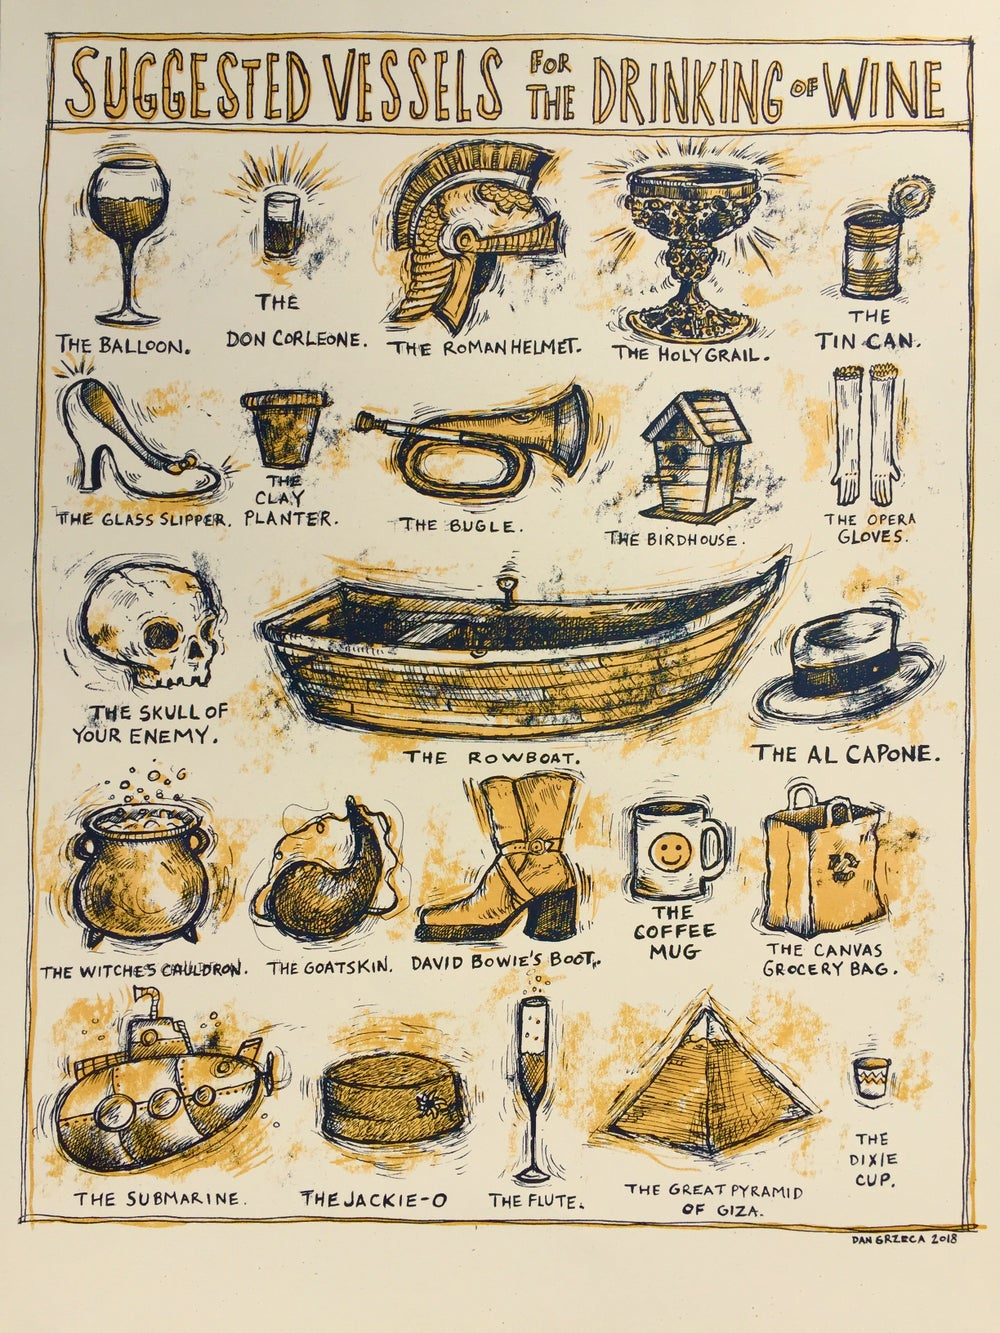 Suggested vessels for the drinking of wine